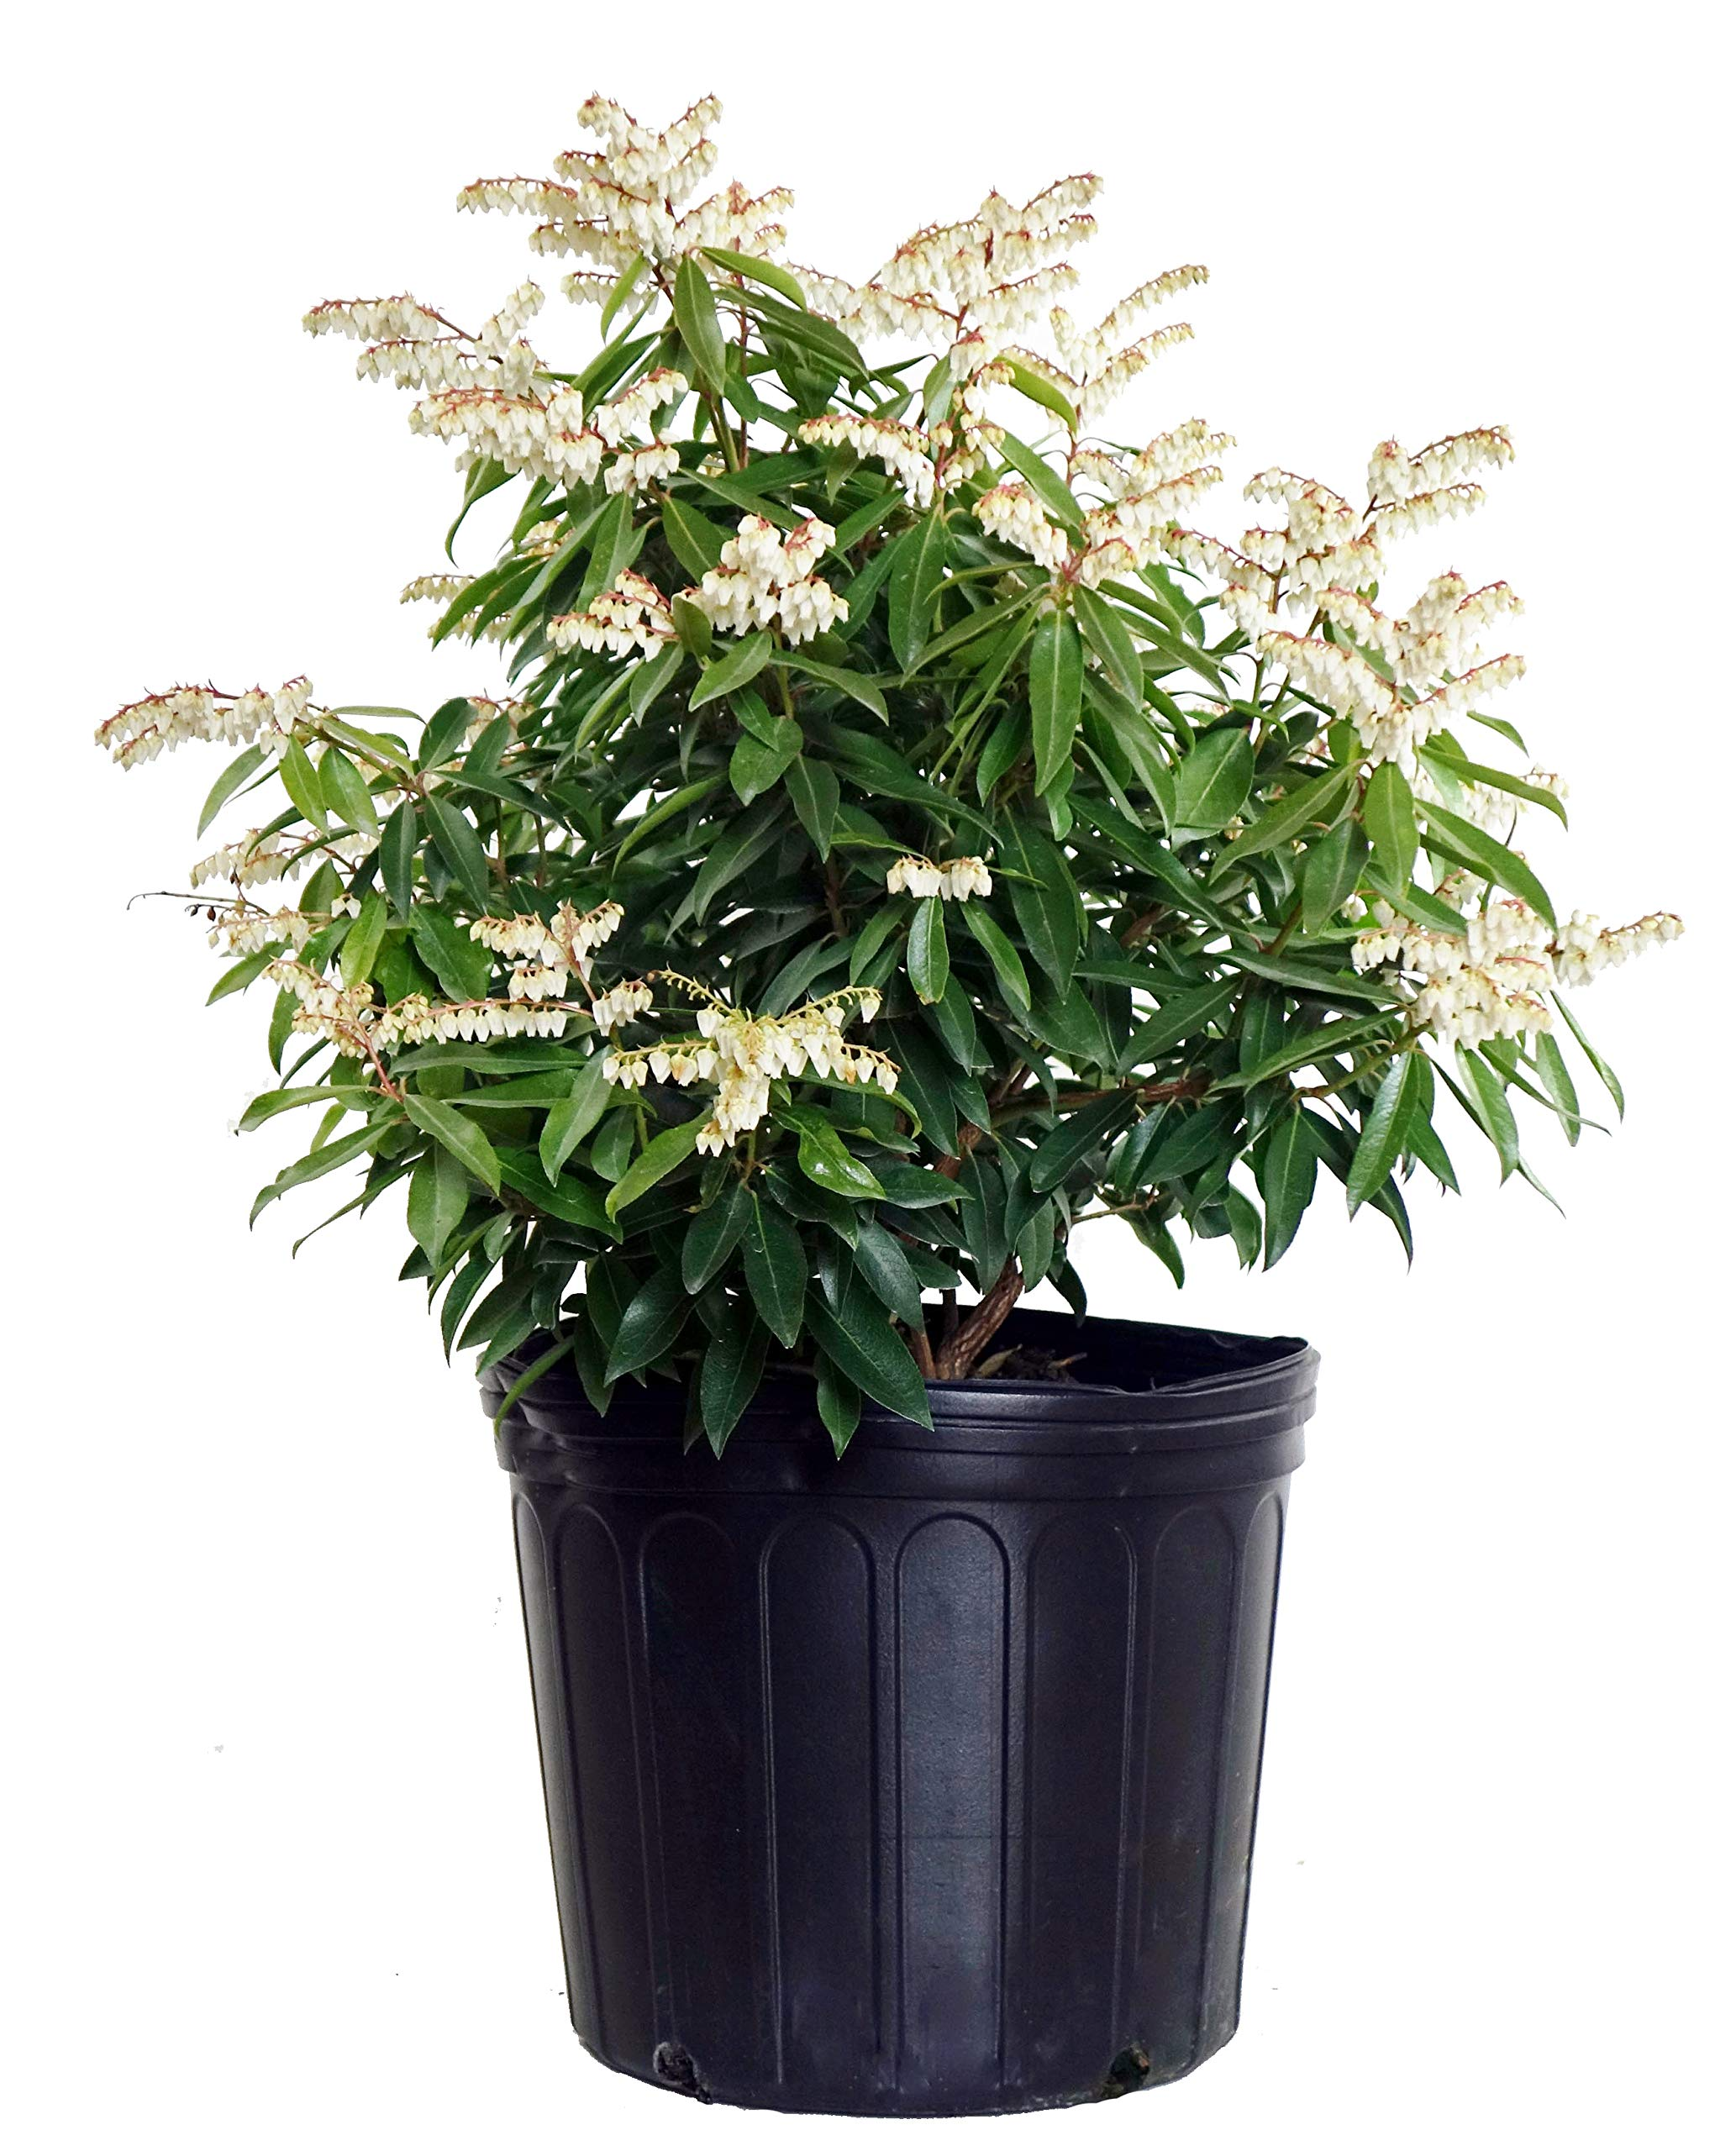 Pieris jap. 'Brouwer's Beauty' (Brouwers Beauty Andromeda) Evergreen, #3 - Size Container by Green Promise Farms